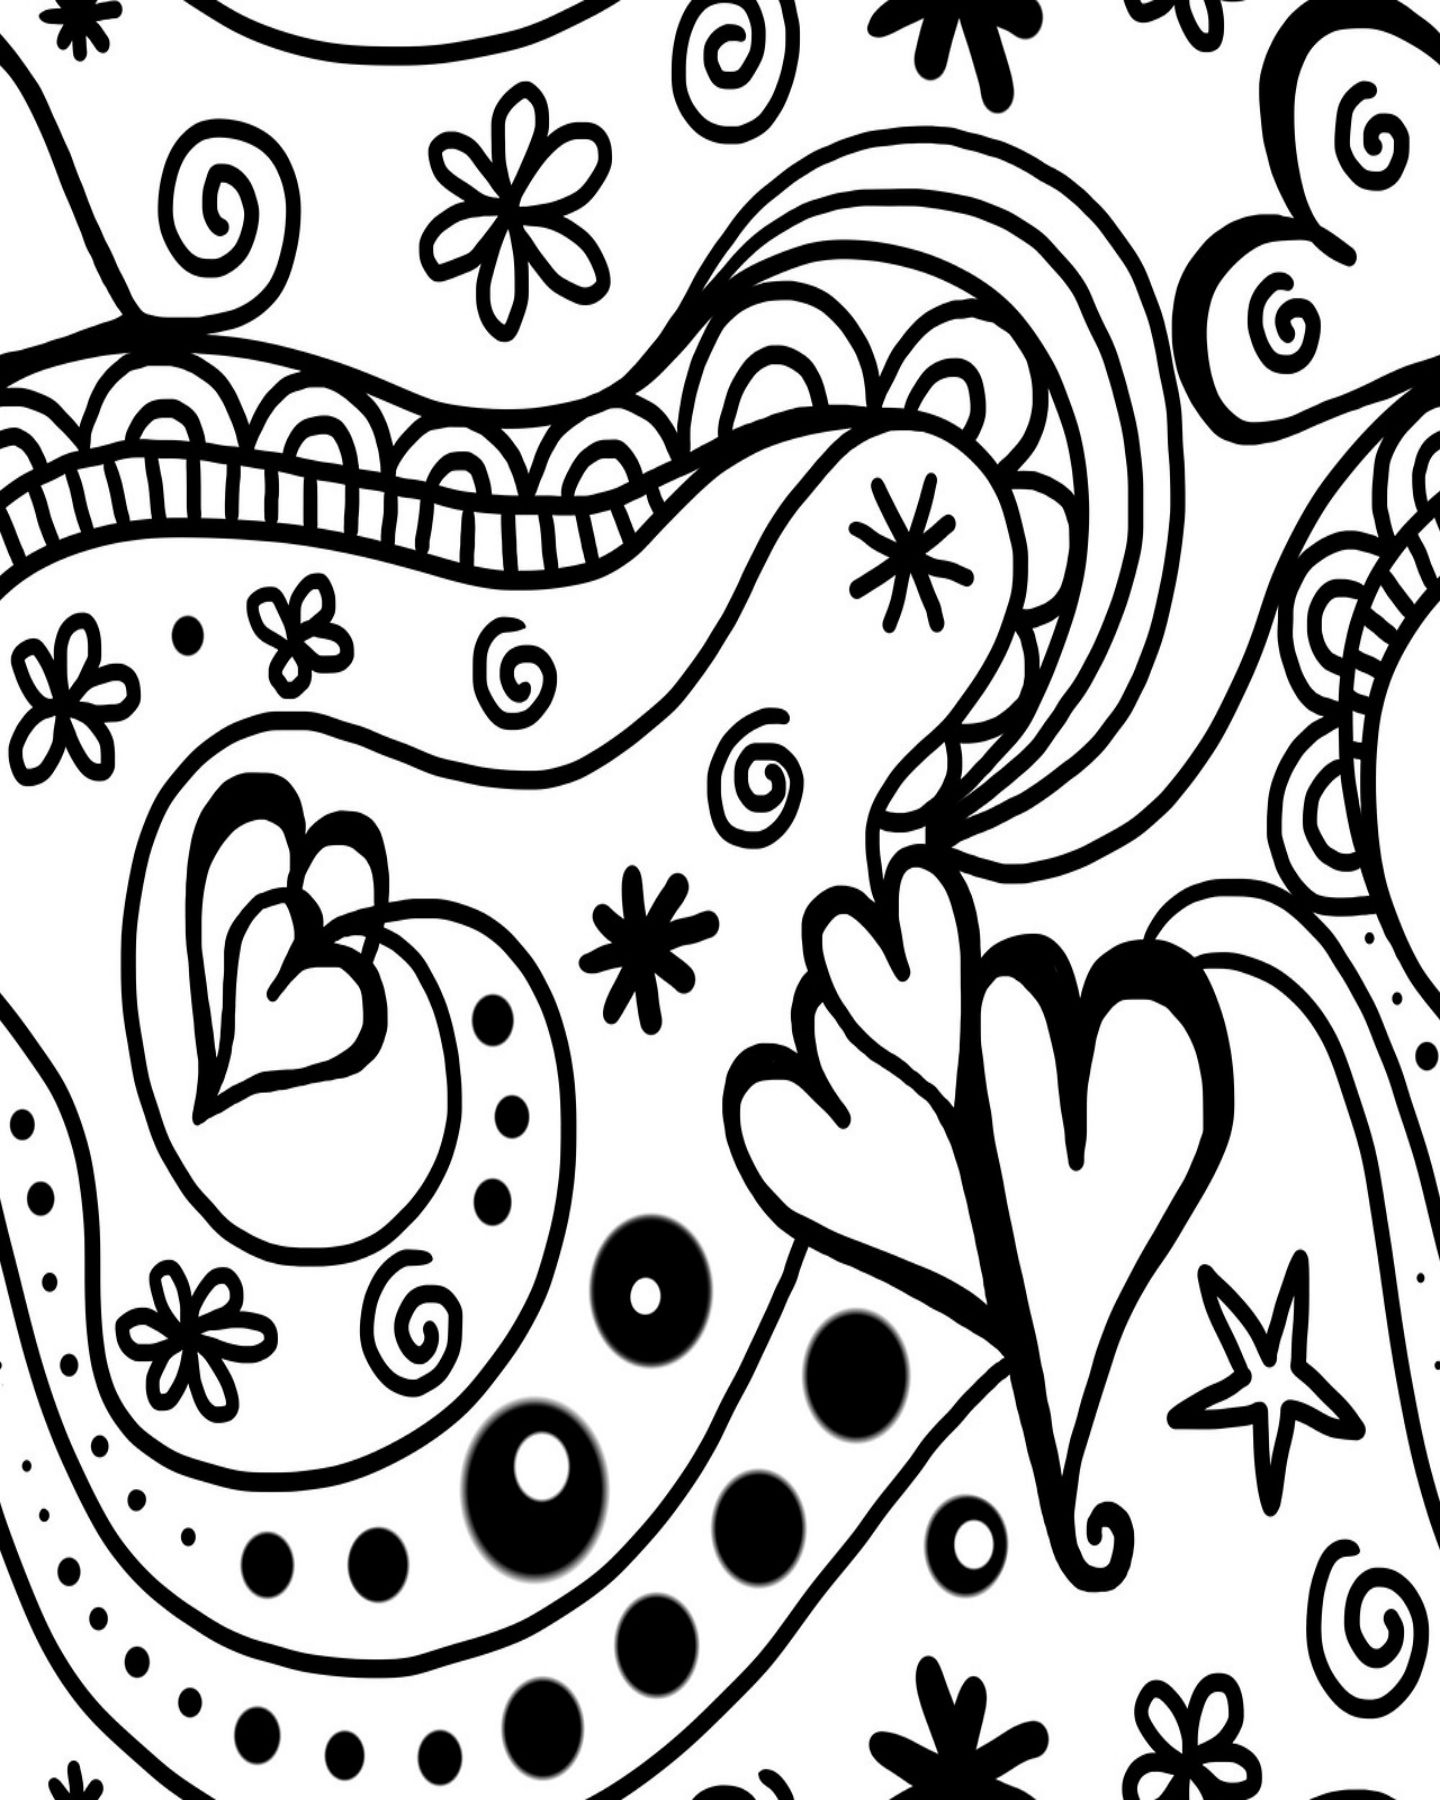 Free Printable Groovy Hearts Coloring Page For Valentine S Day Fine Art